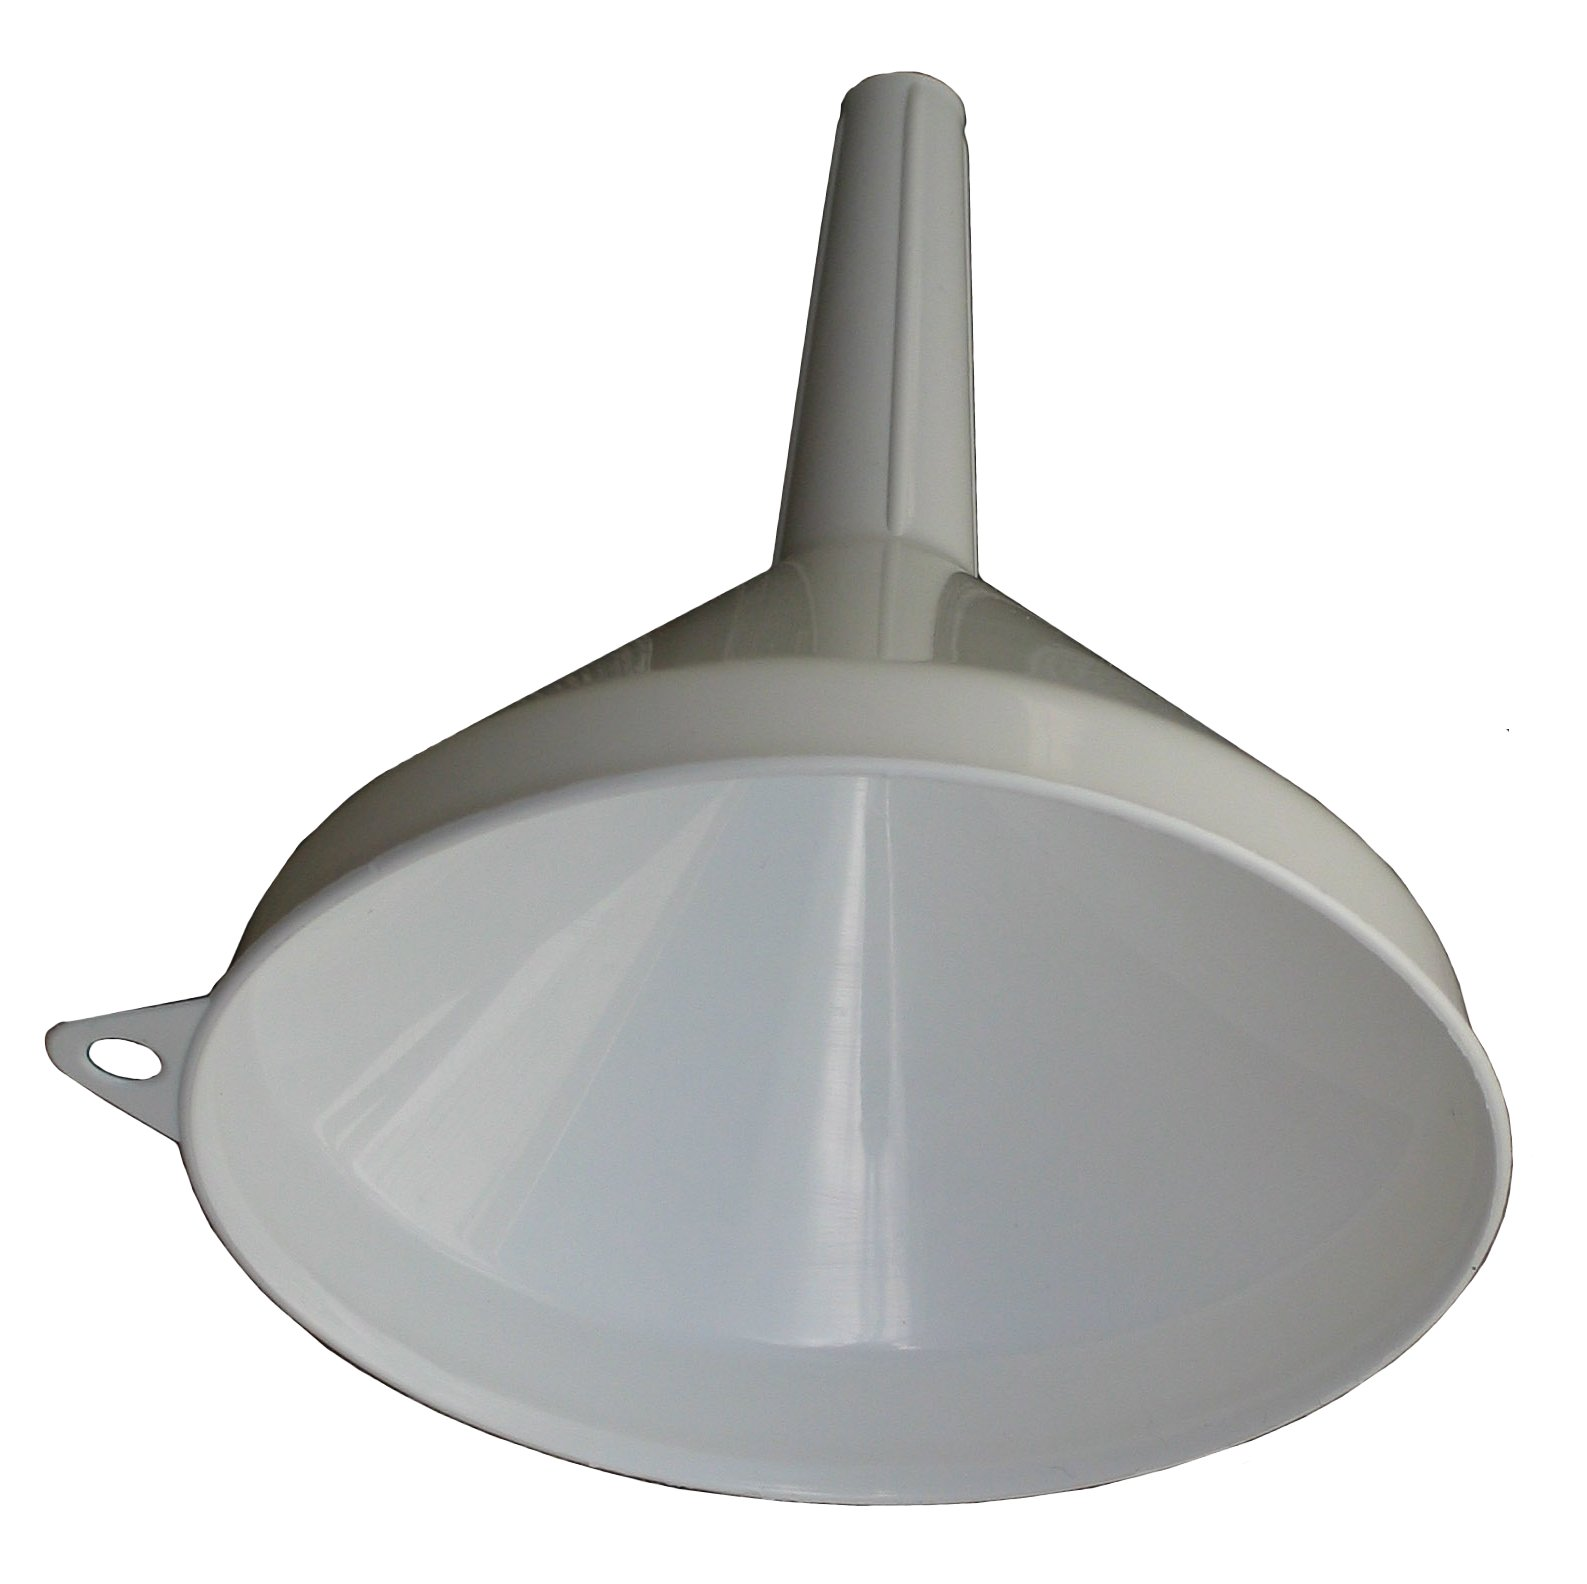 http://fr.academic.ru/pictures/frwiki/75/Kitchen_Funnel.jpg